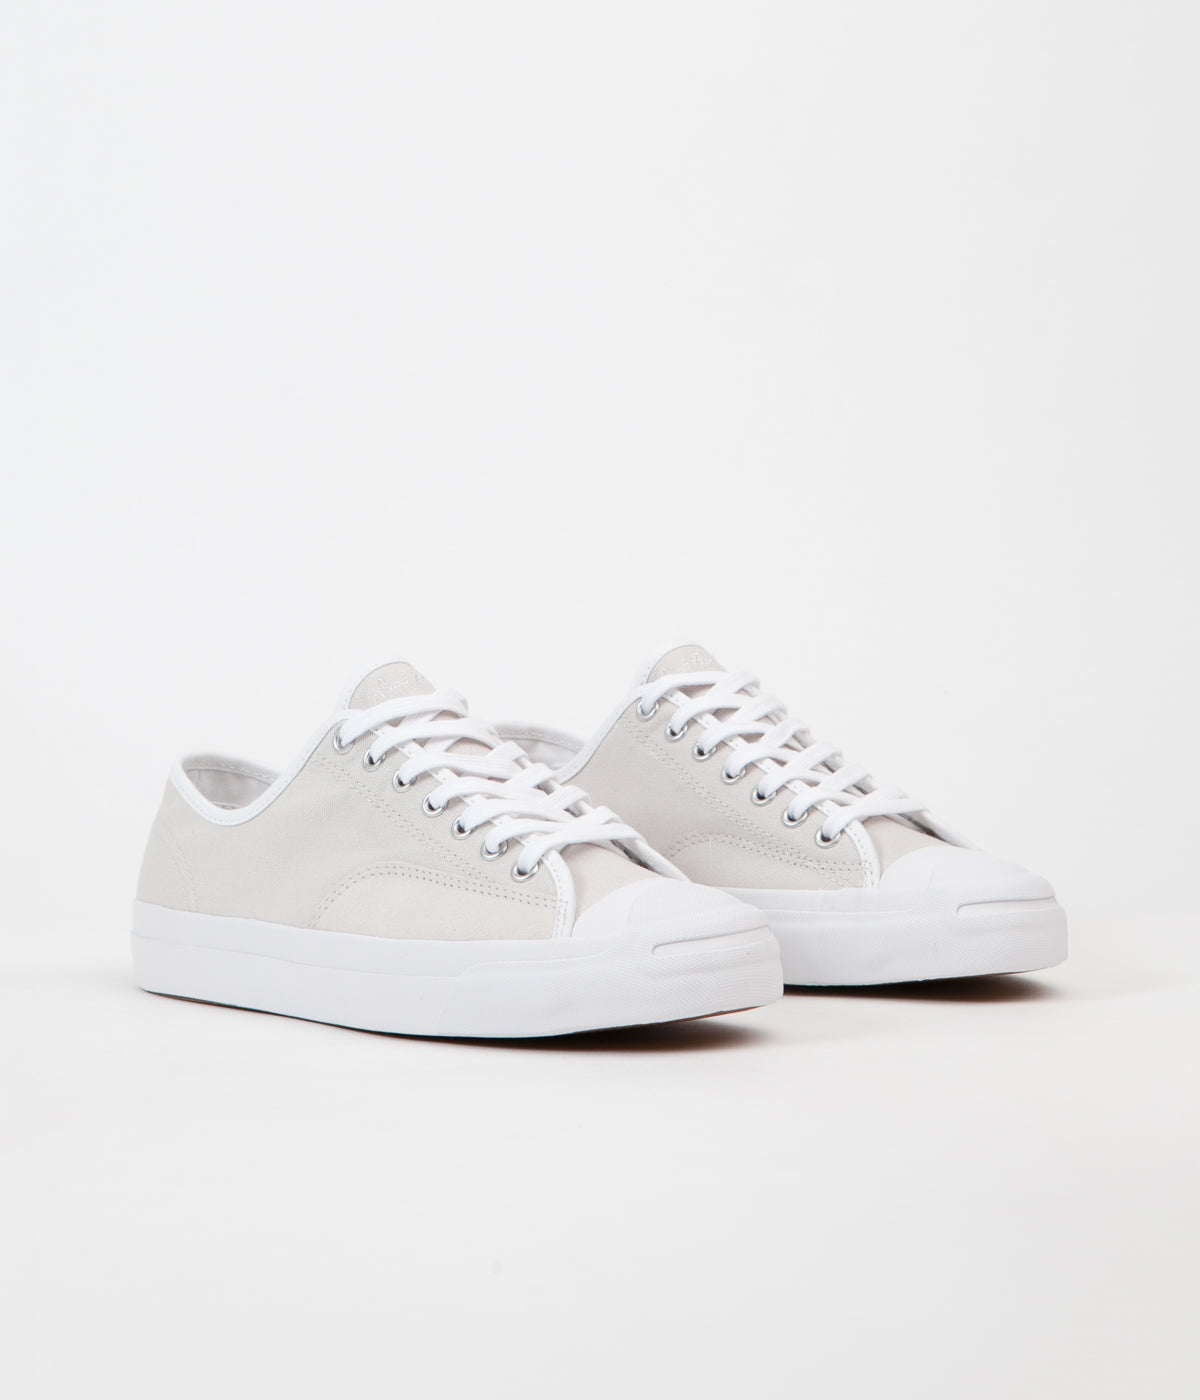 Converse JP Pro Ox Shoes - Pale Putty / White / White